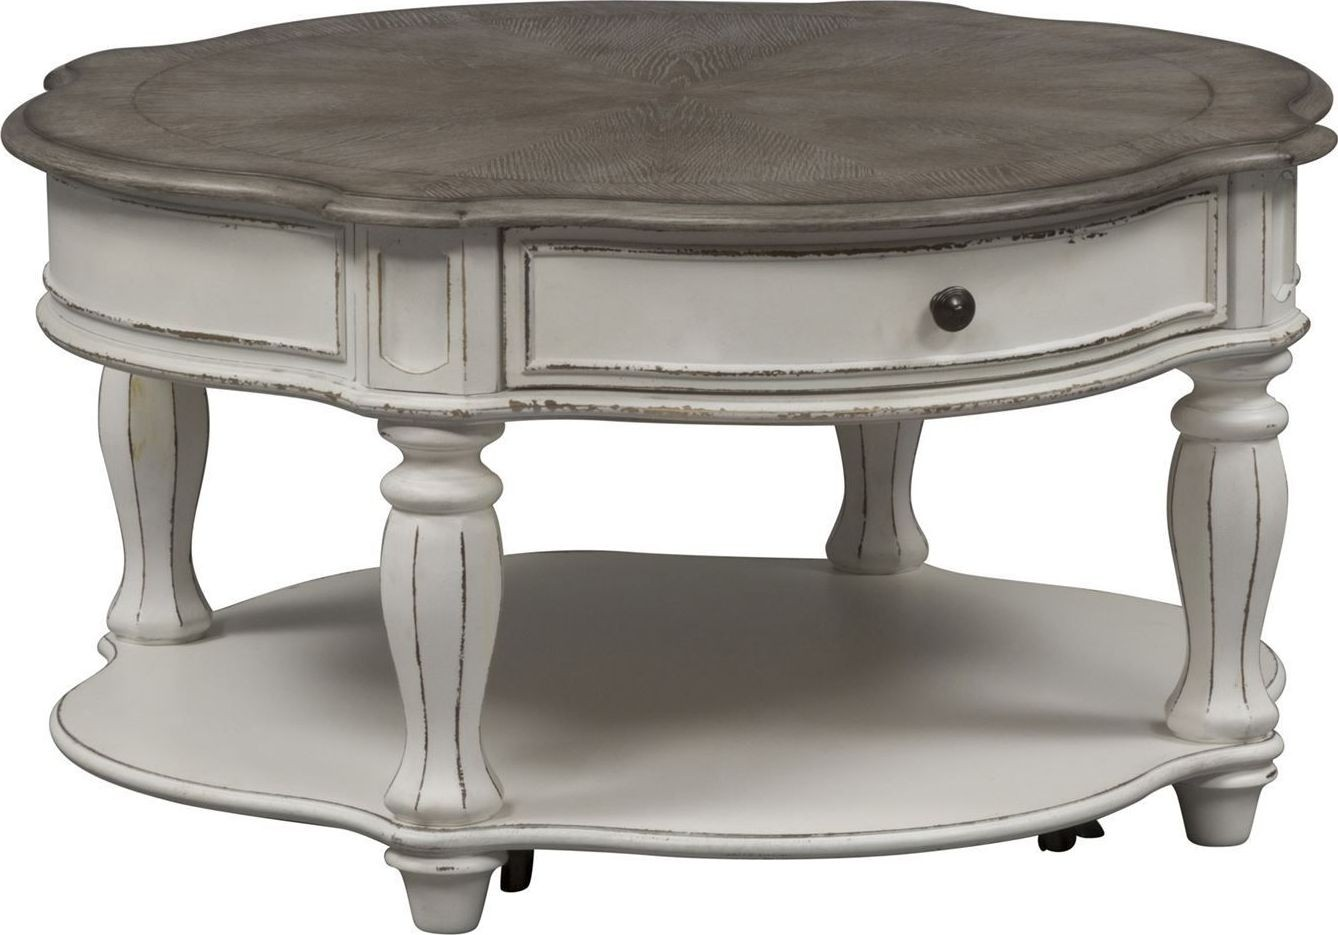 Magnolia Manor Antique White Round Cocktail Table From